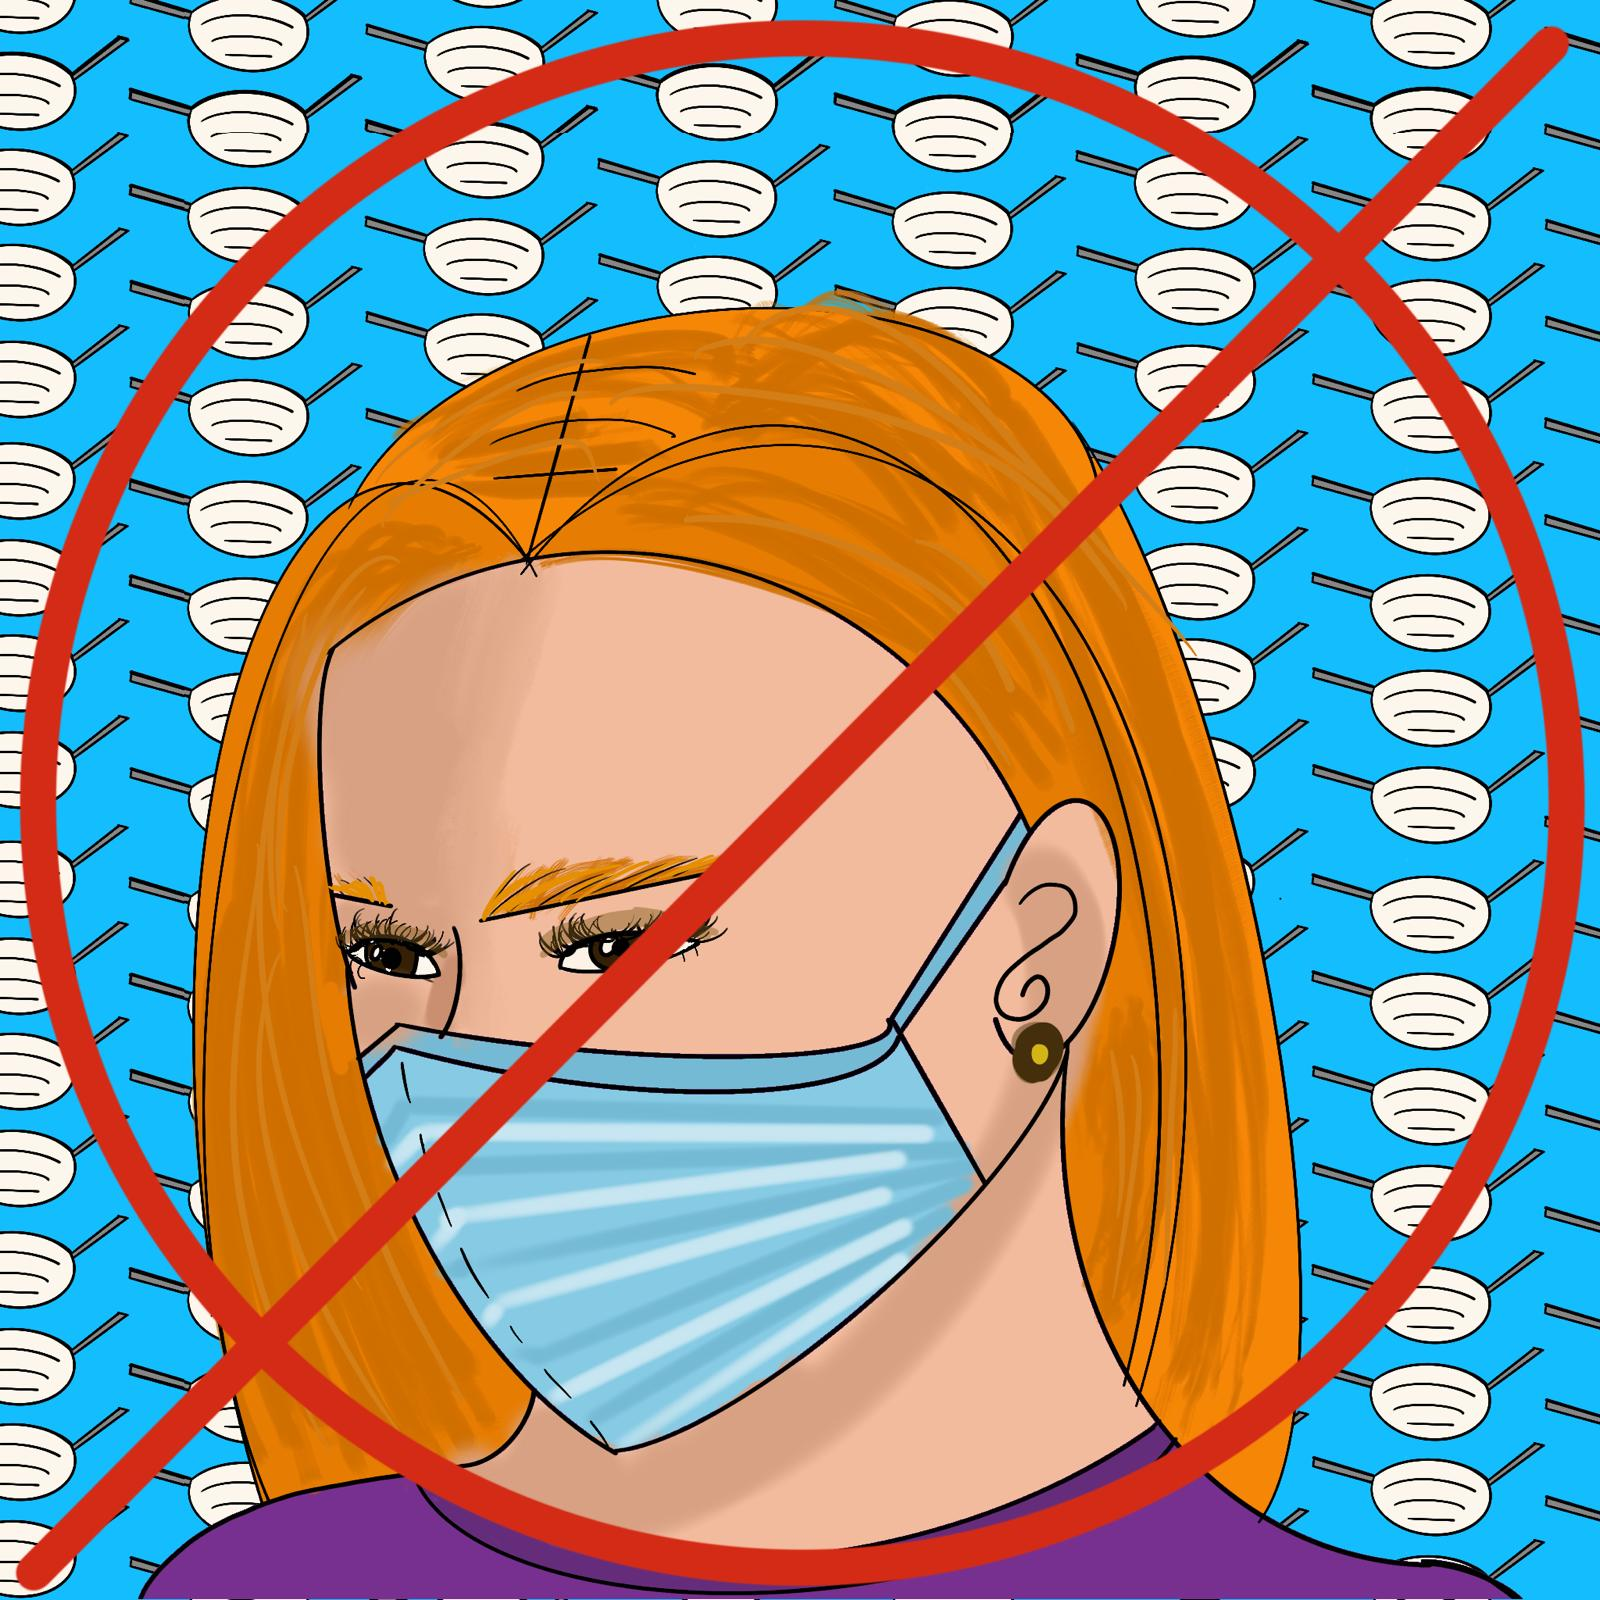 Face mask illustration by maria soloman for 360 MAGAZINE article.